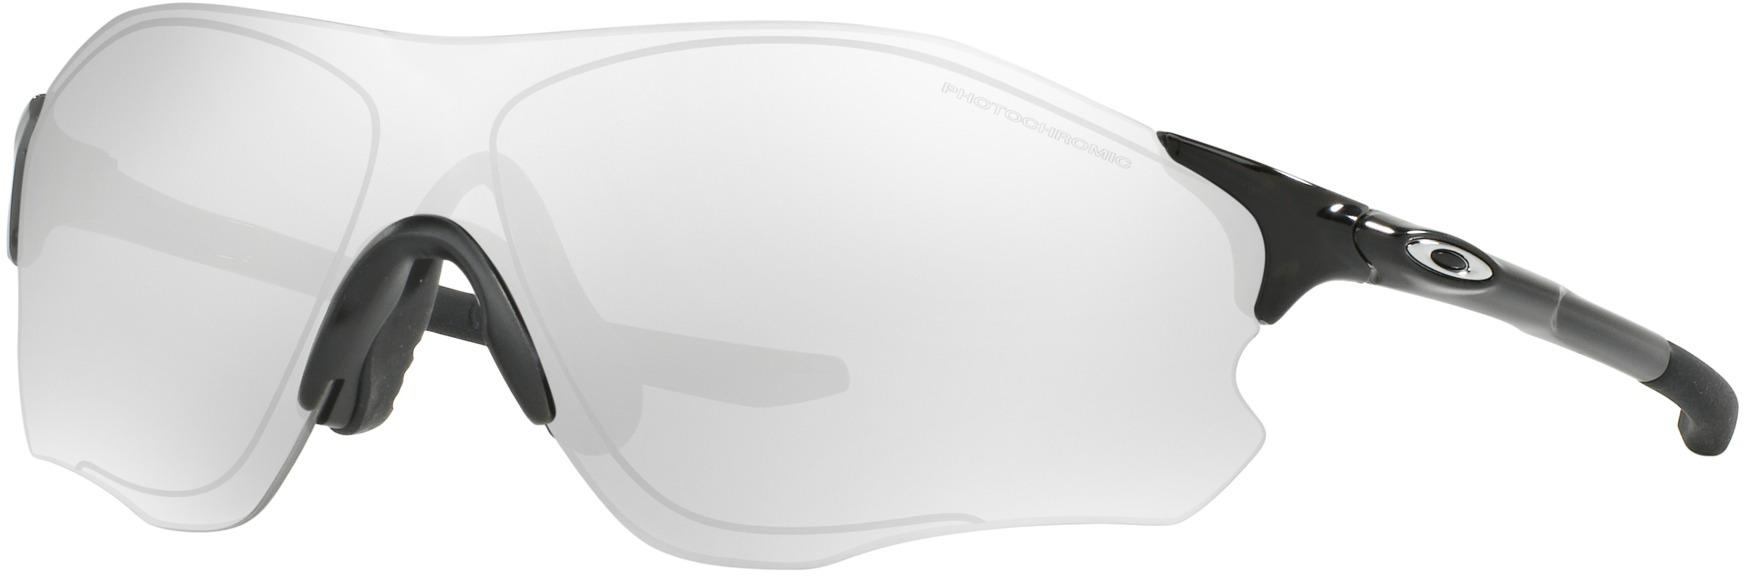 dfb8dba45cc Oakley Evzero Path Photochromic Glasses Black Clear £153.00